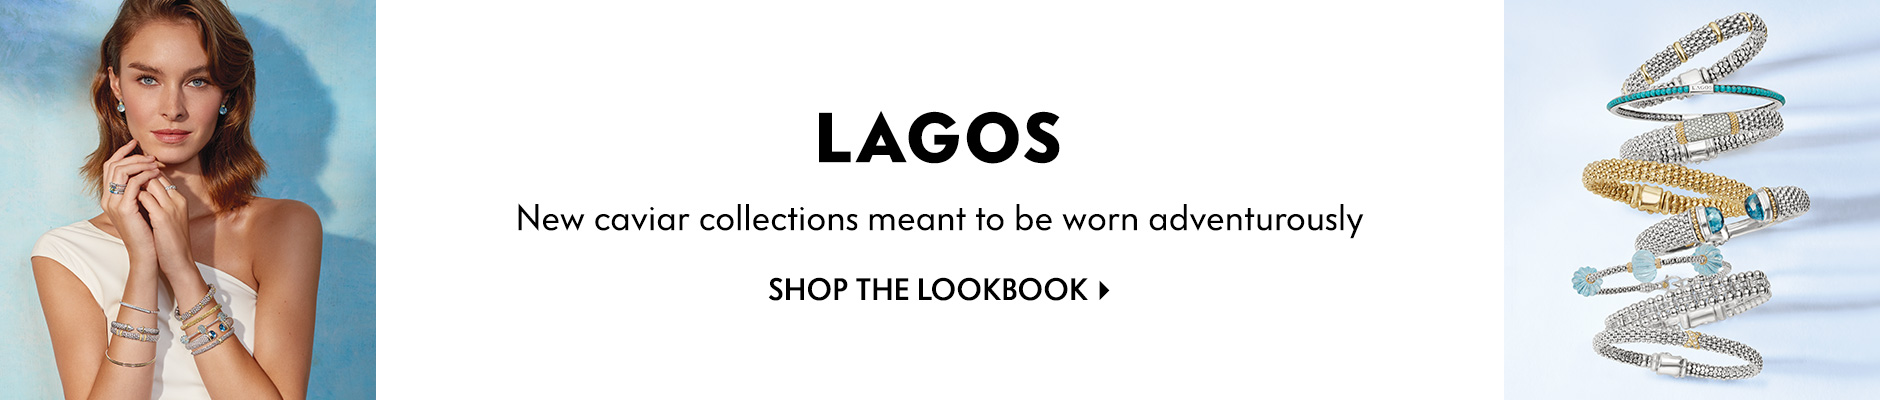 Lagos Lookbook